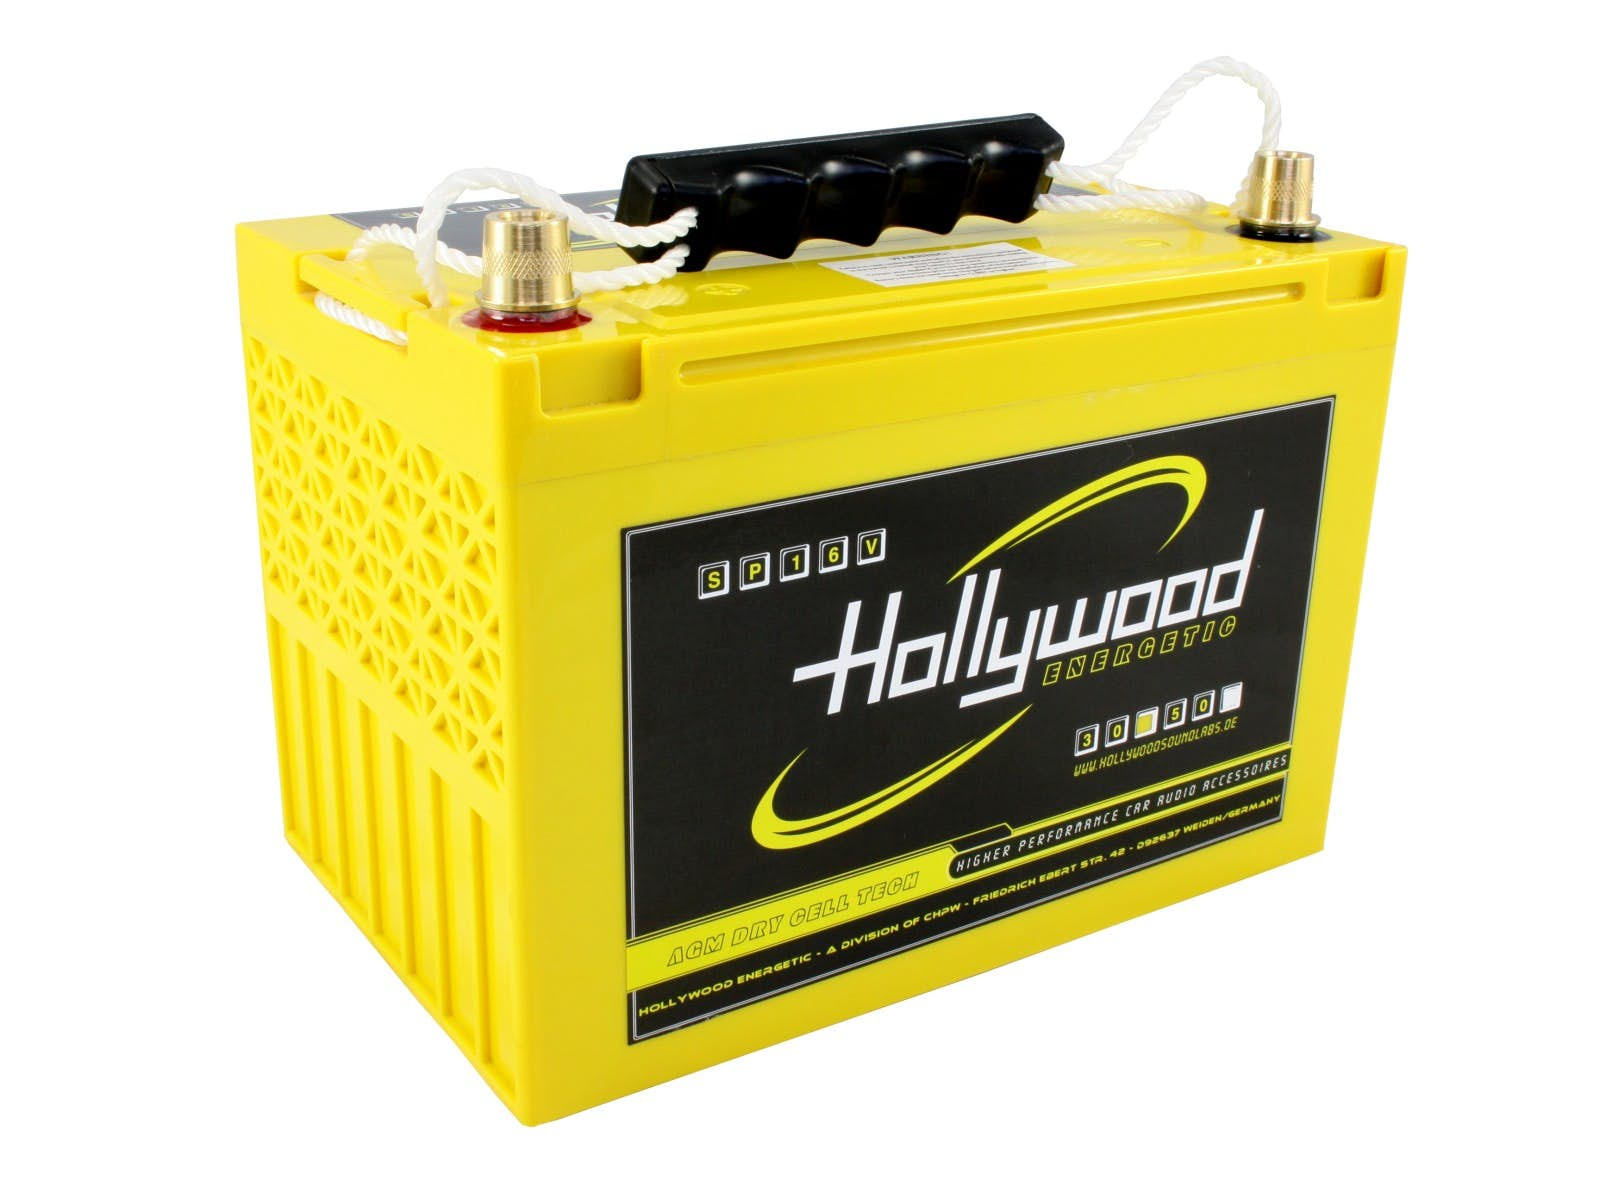 Akumulator Hollywood ENERGETIC SP16V 50 (50 Ah)